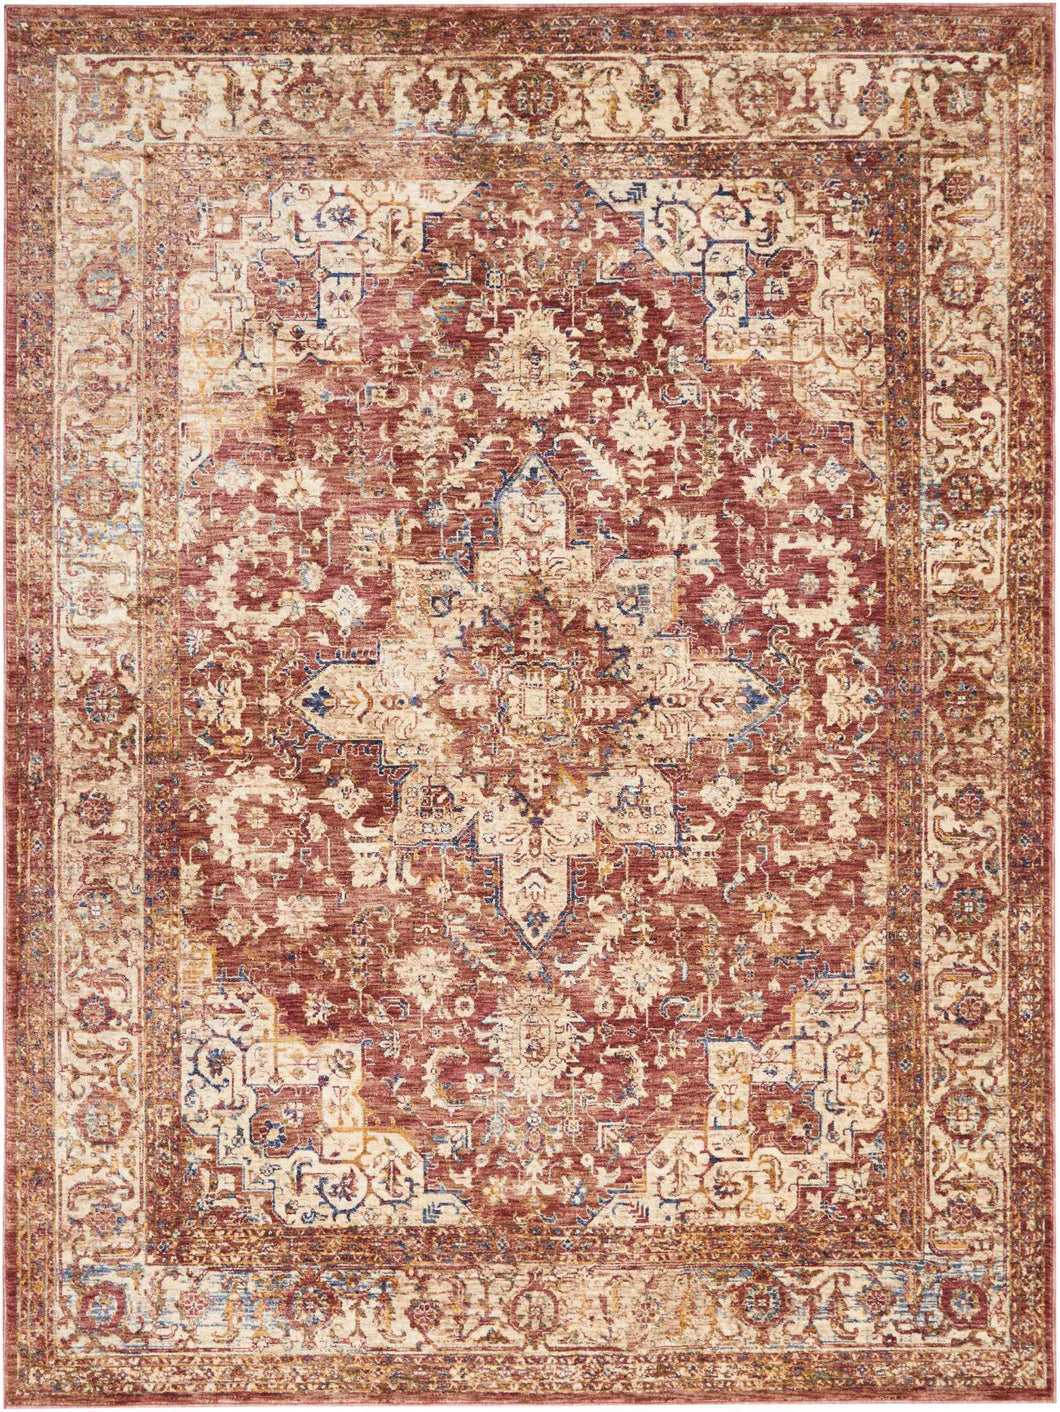 Area Rugs - Taza TAZ02 Heriz Red